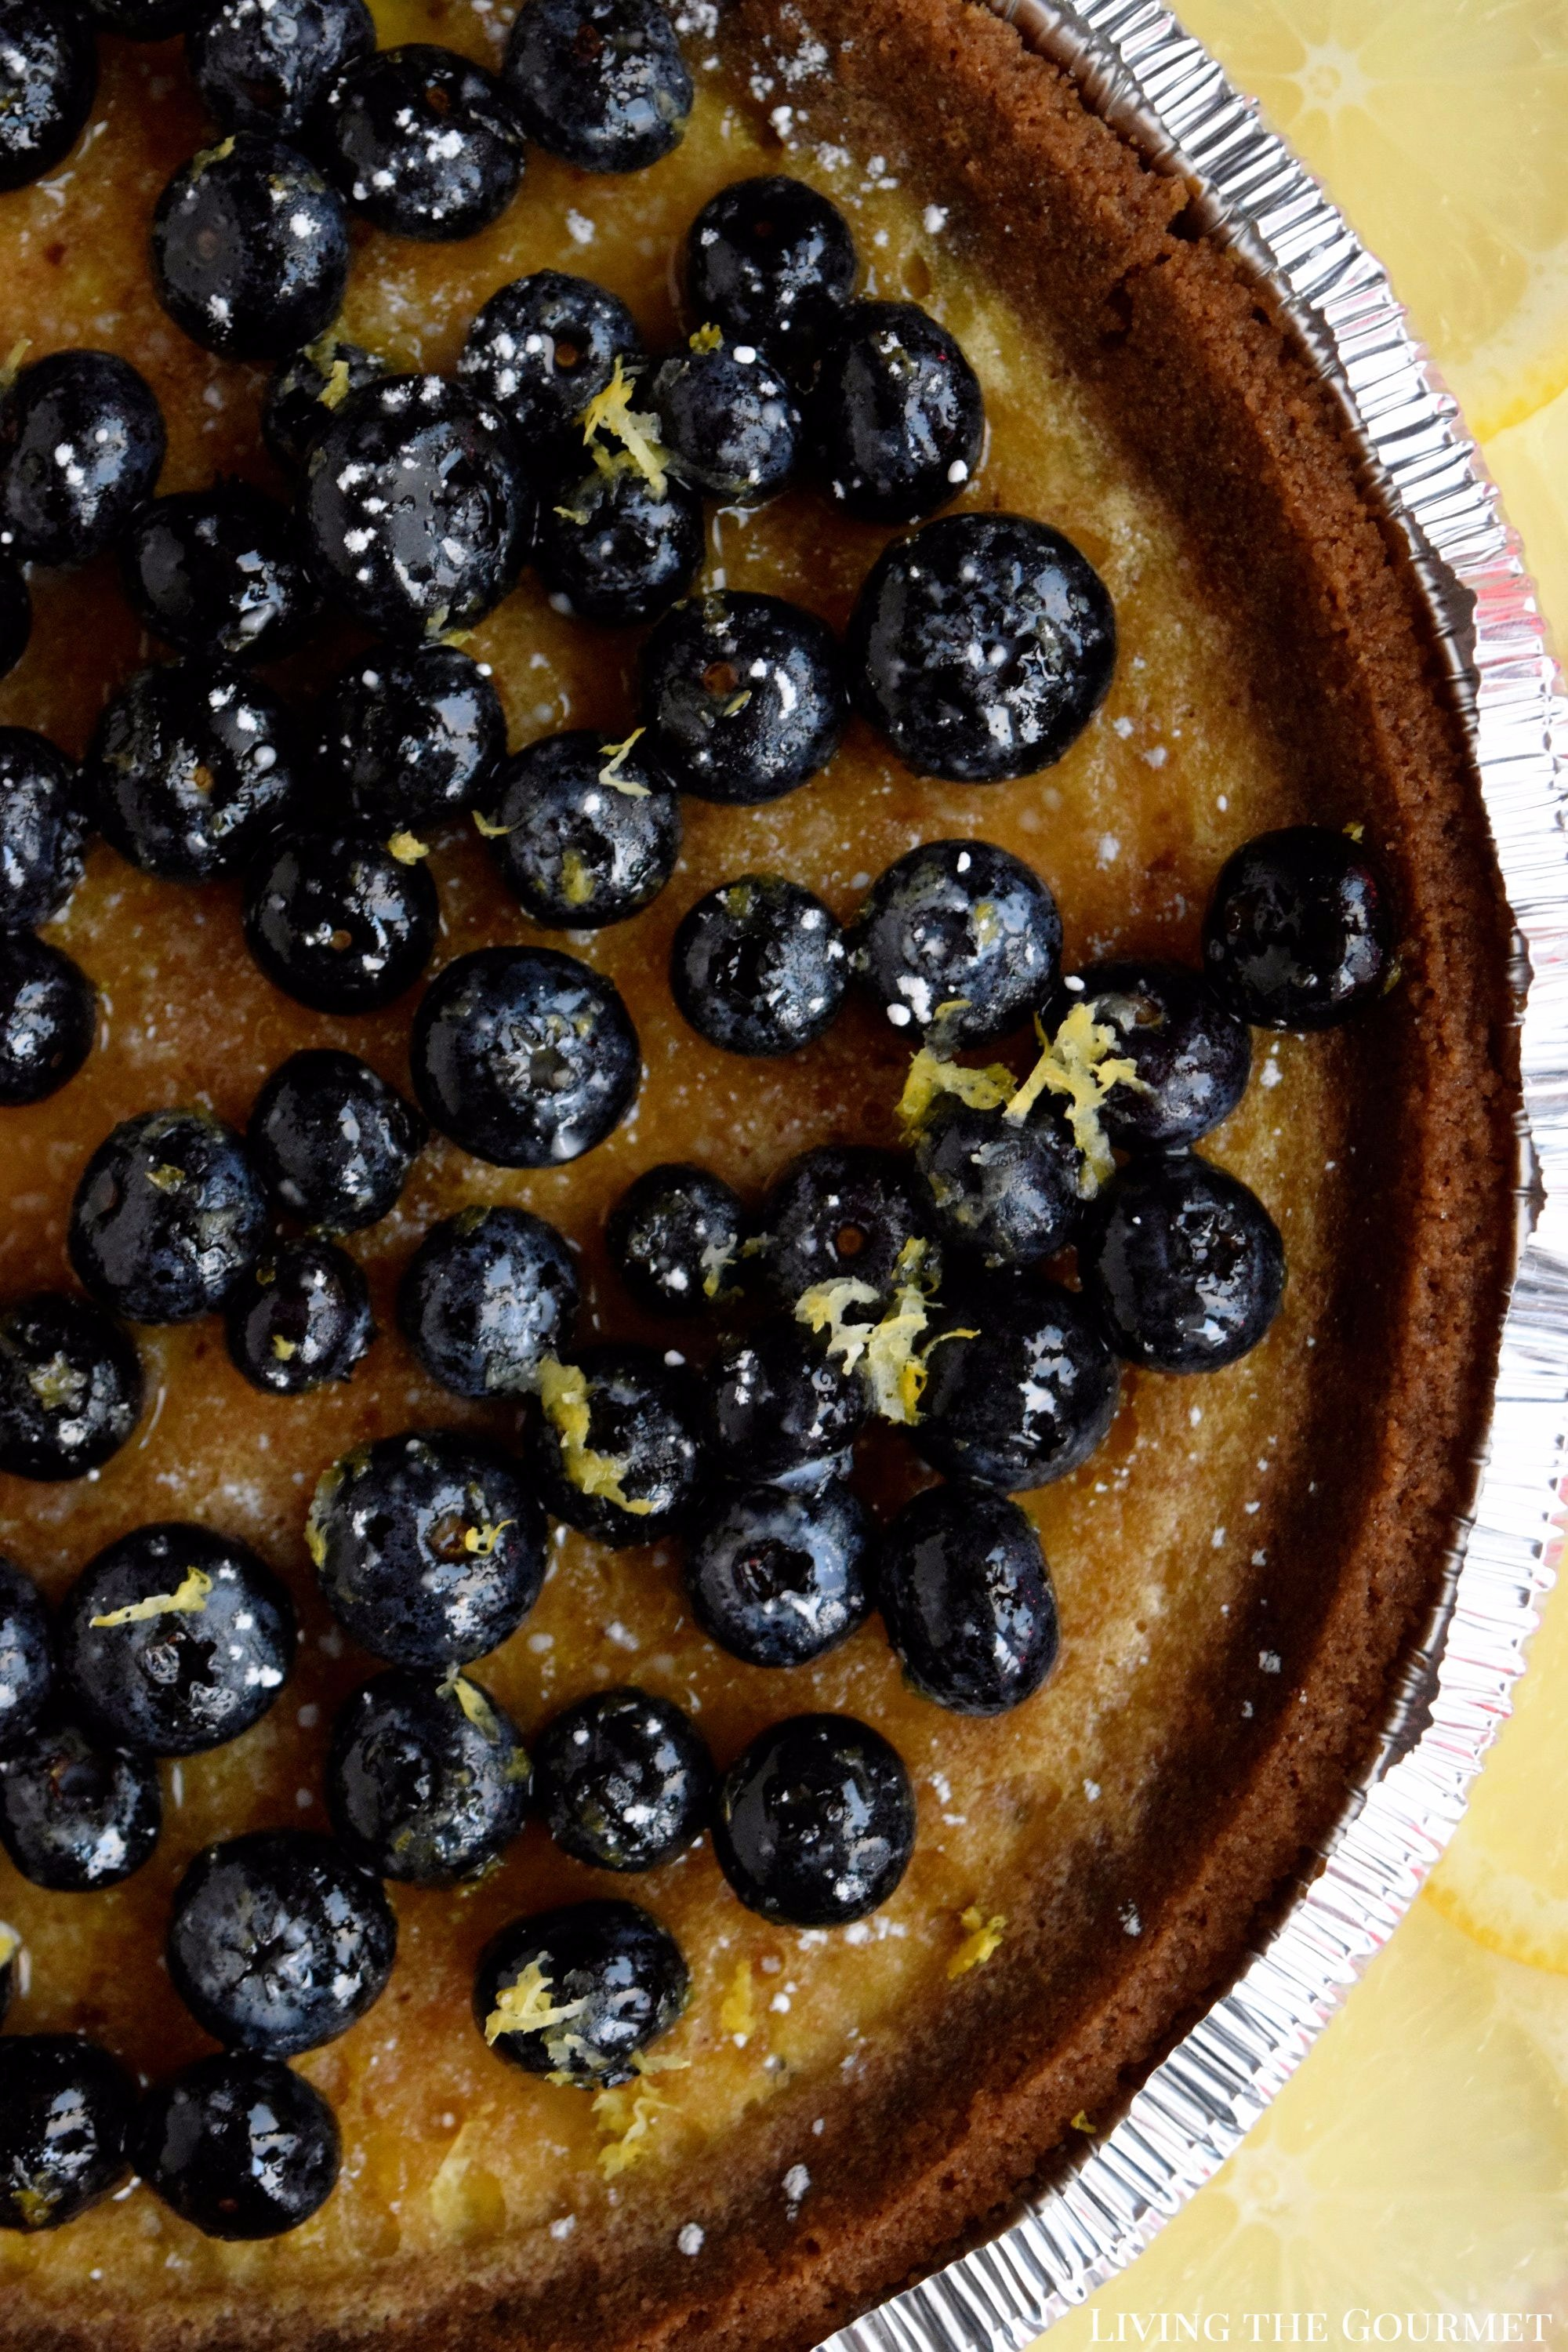 Blueberry Custard Pie (Gluten Free) - Living The Gourmet